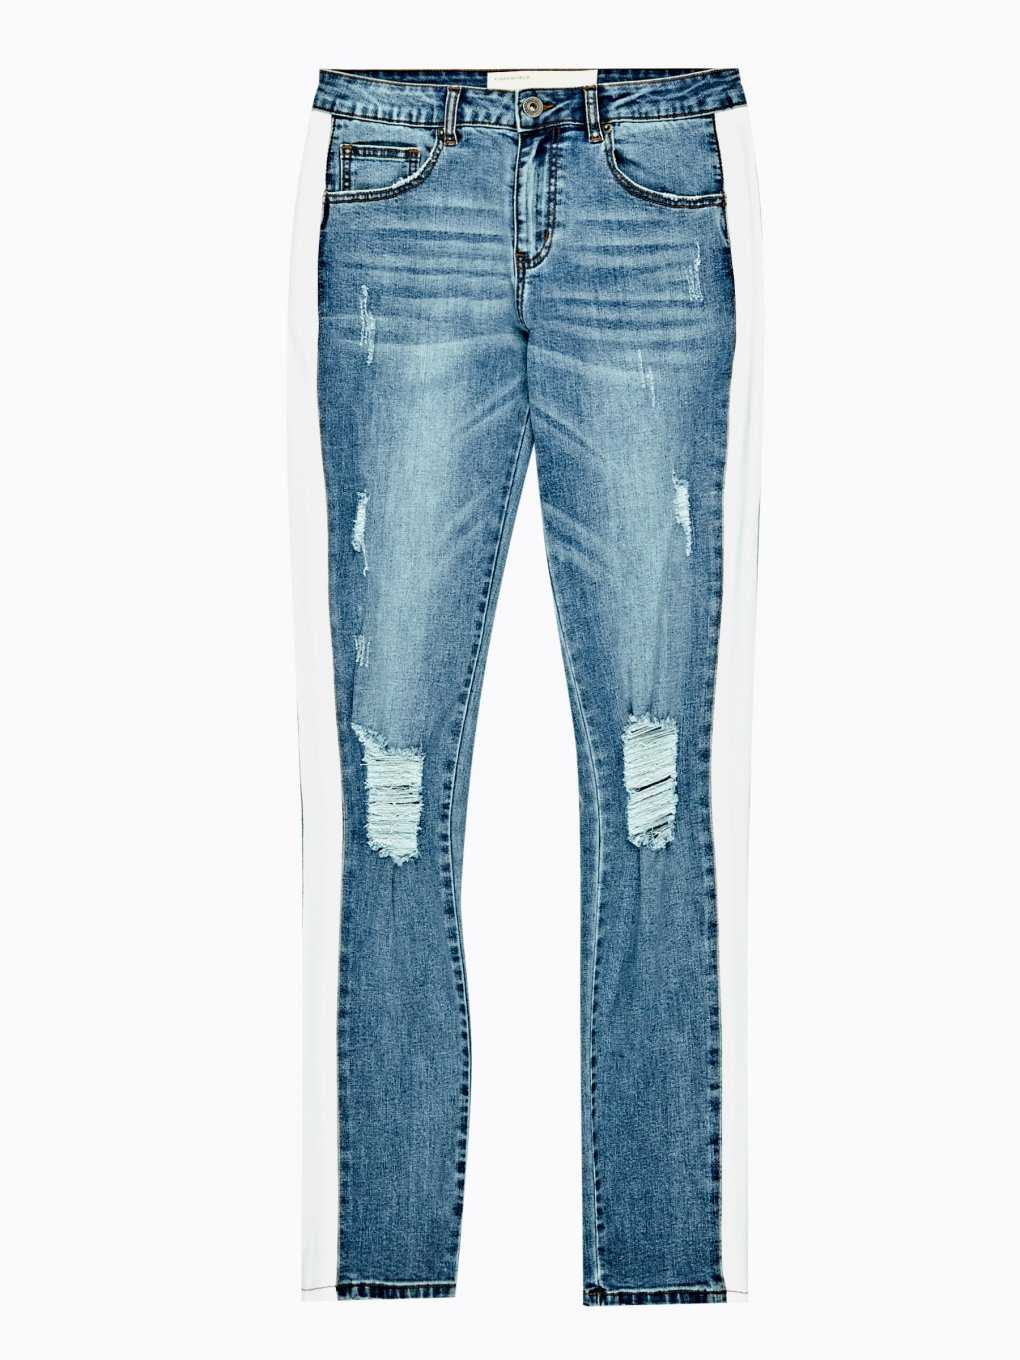 Taped straight slim fit distressed jeans